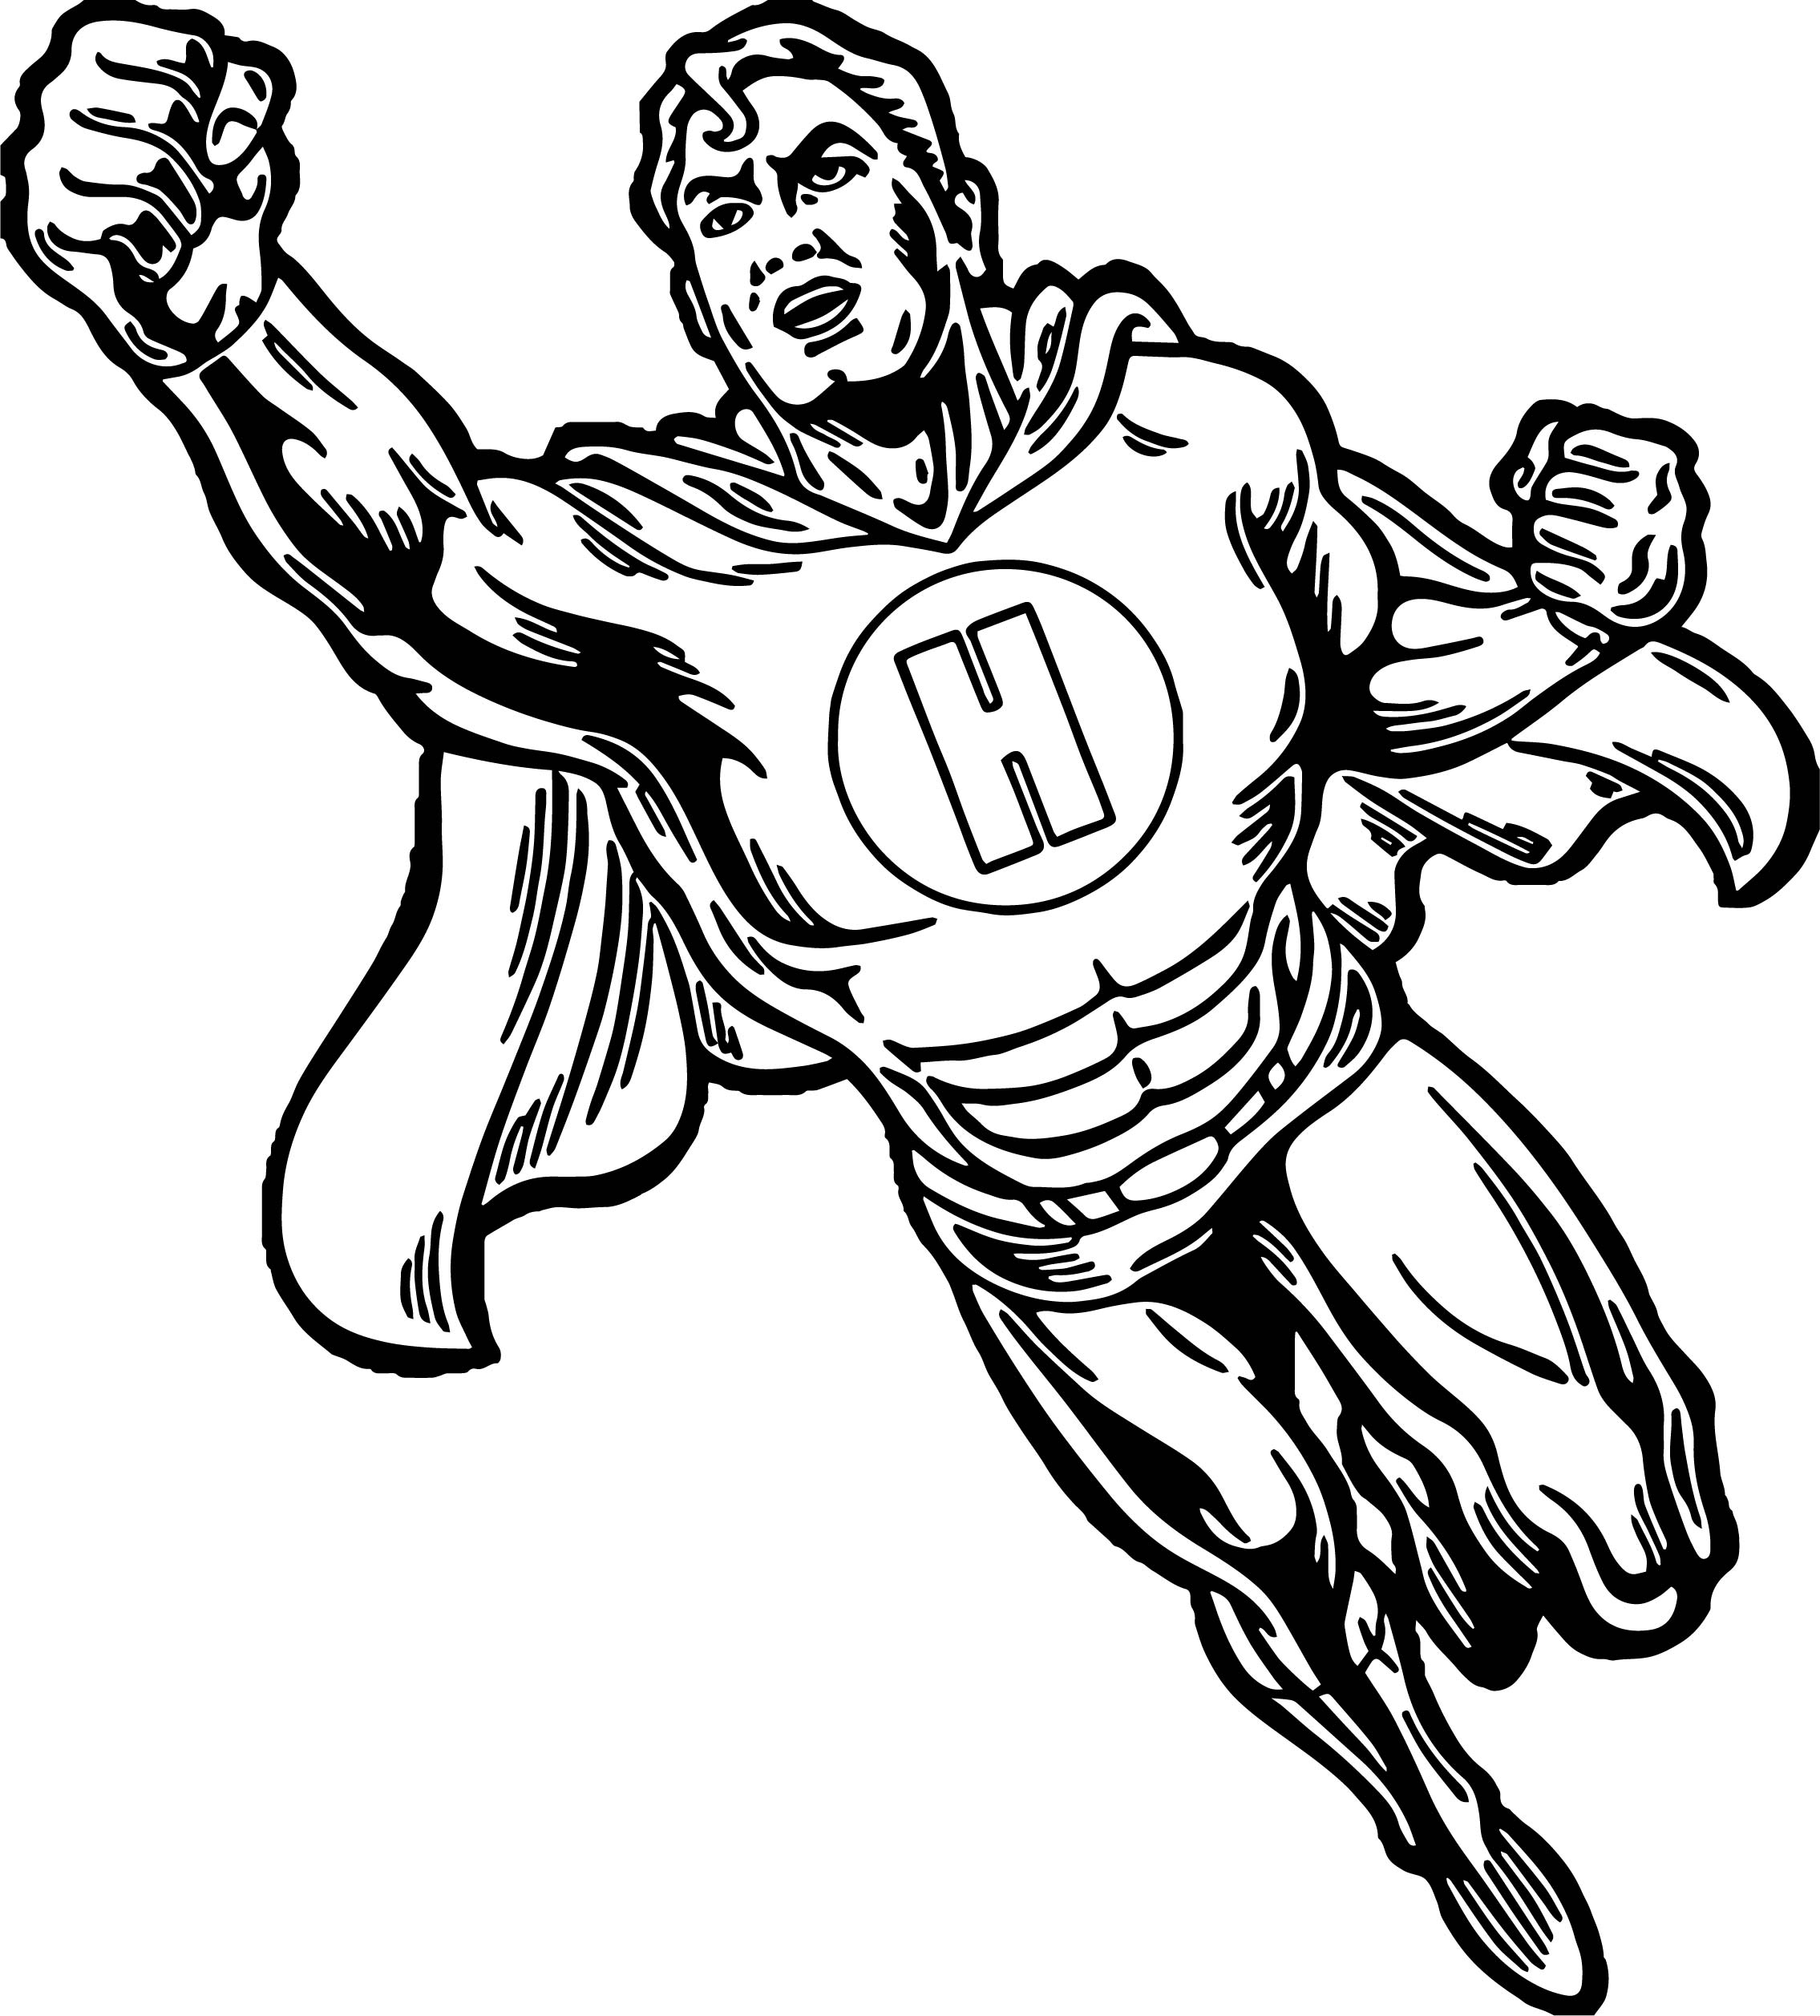 Superheroes Super Hero Man Coloring Page